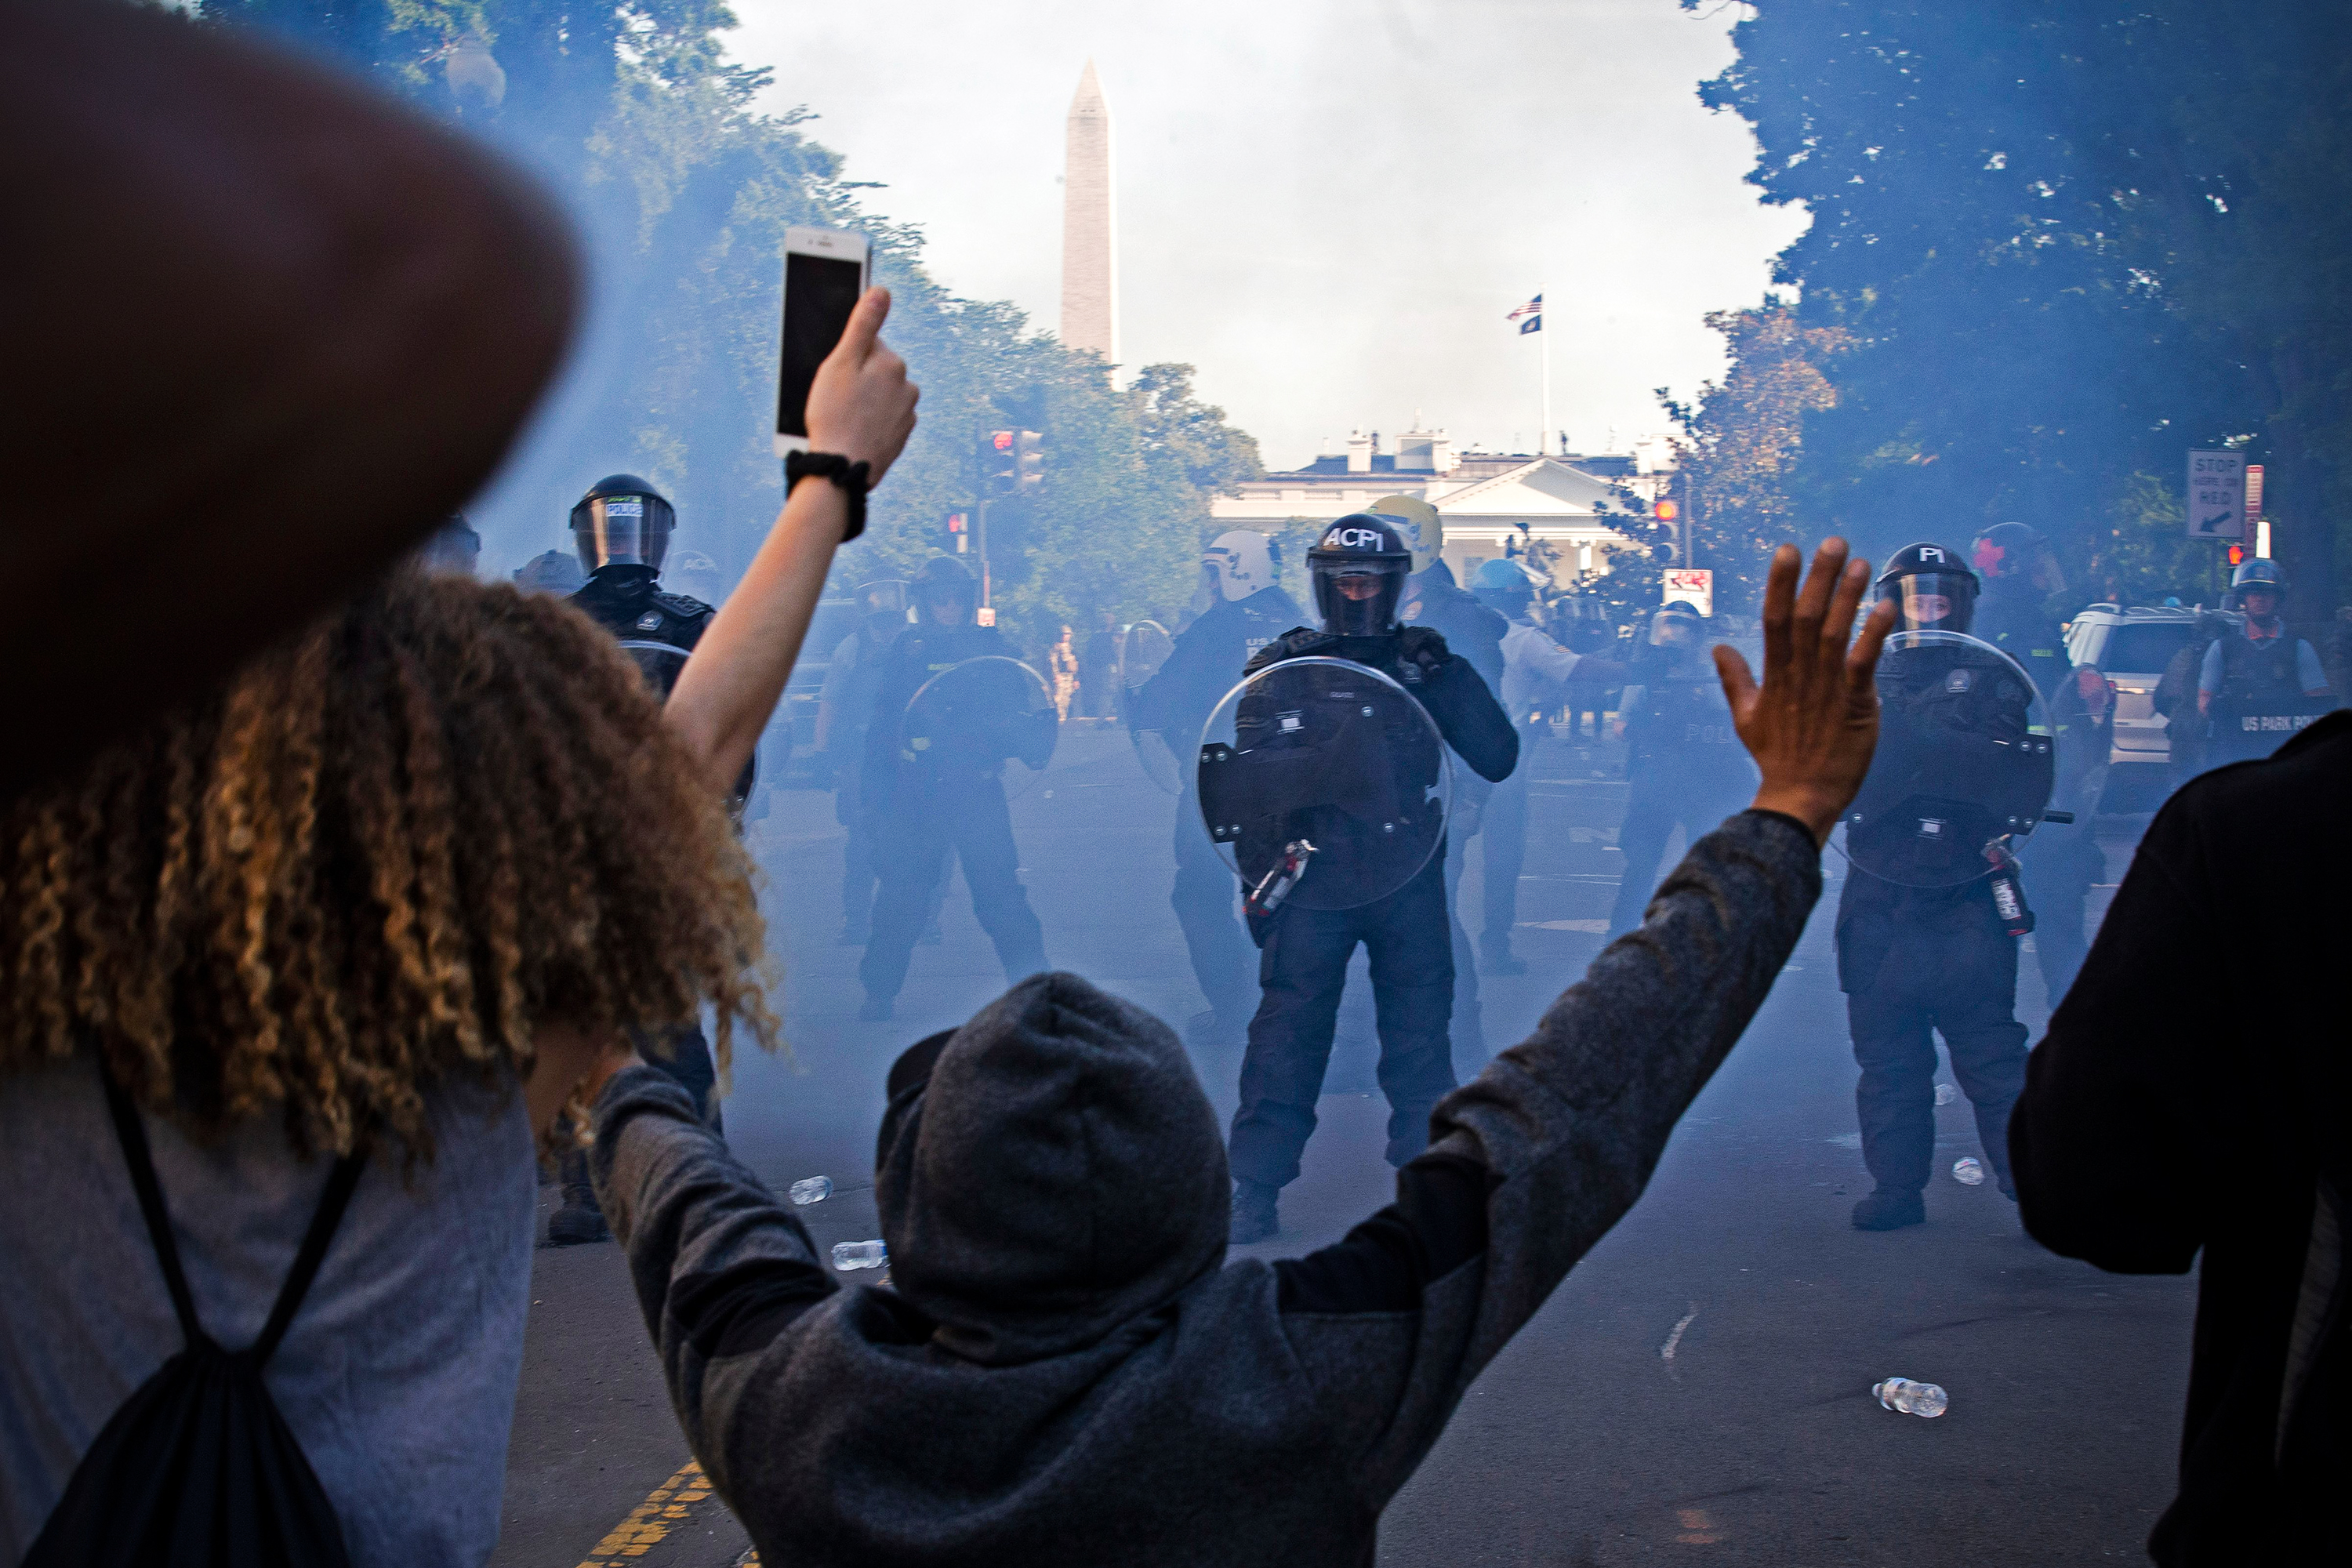 Police push back demonstrators outside of the White House after deploying tear gas on protesters on June 1.